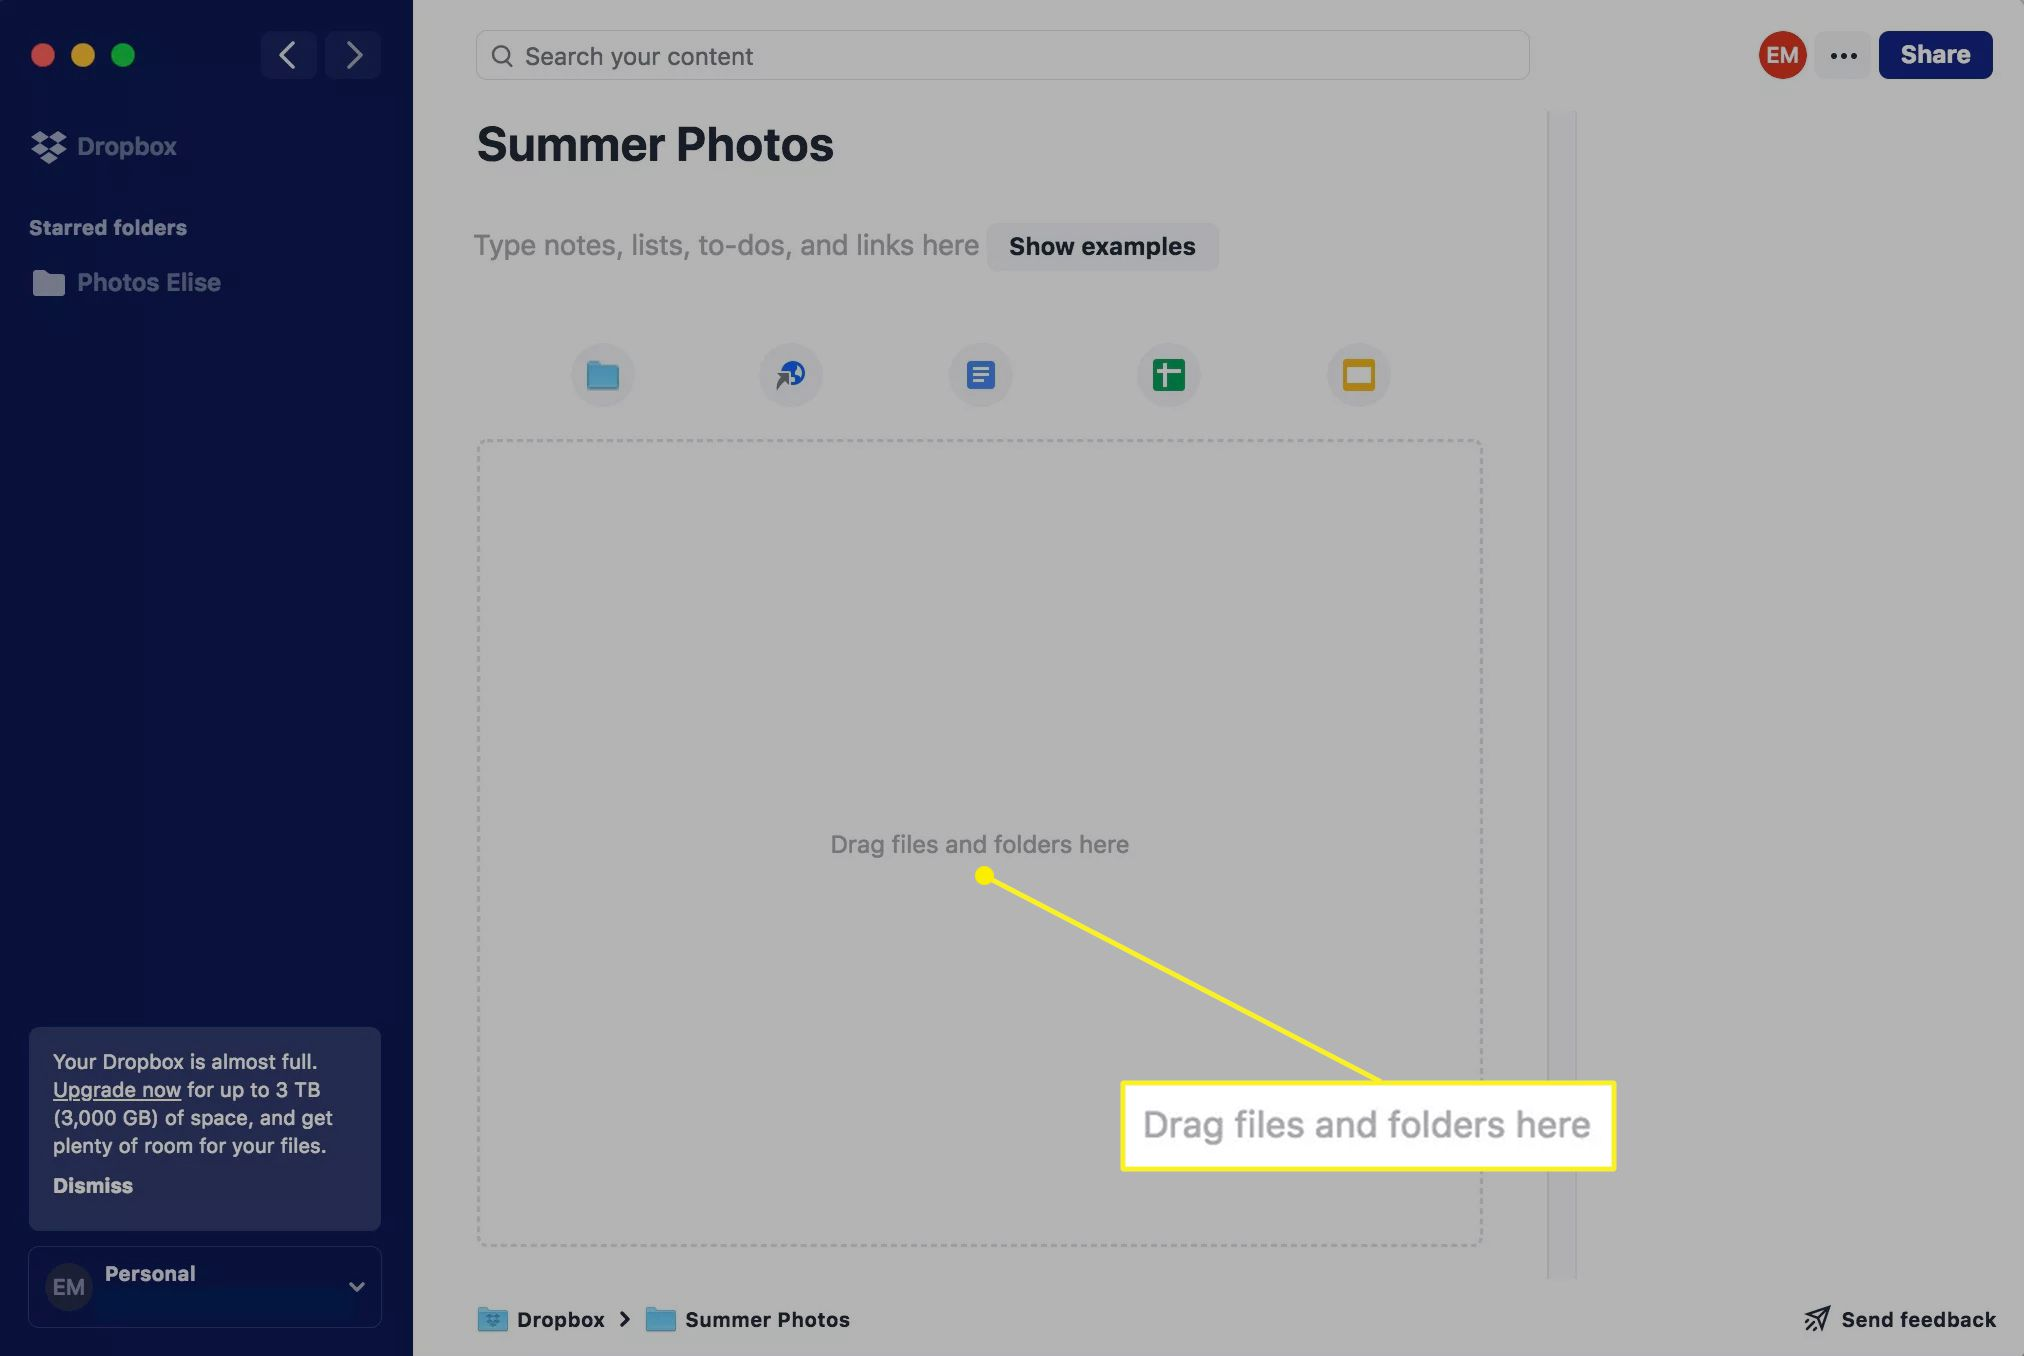 Dropbox new folder screen with Drag files and folders here highlighted